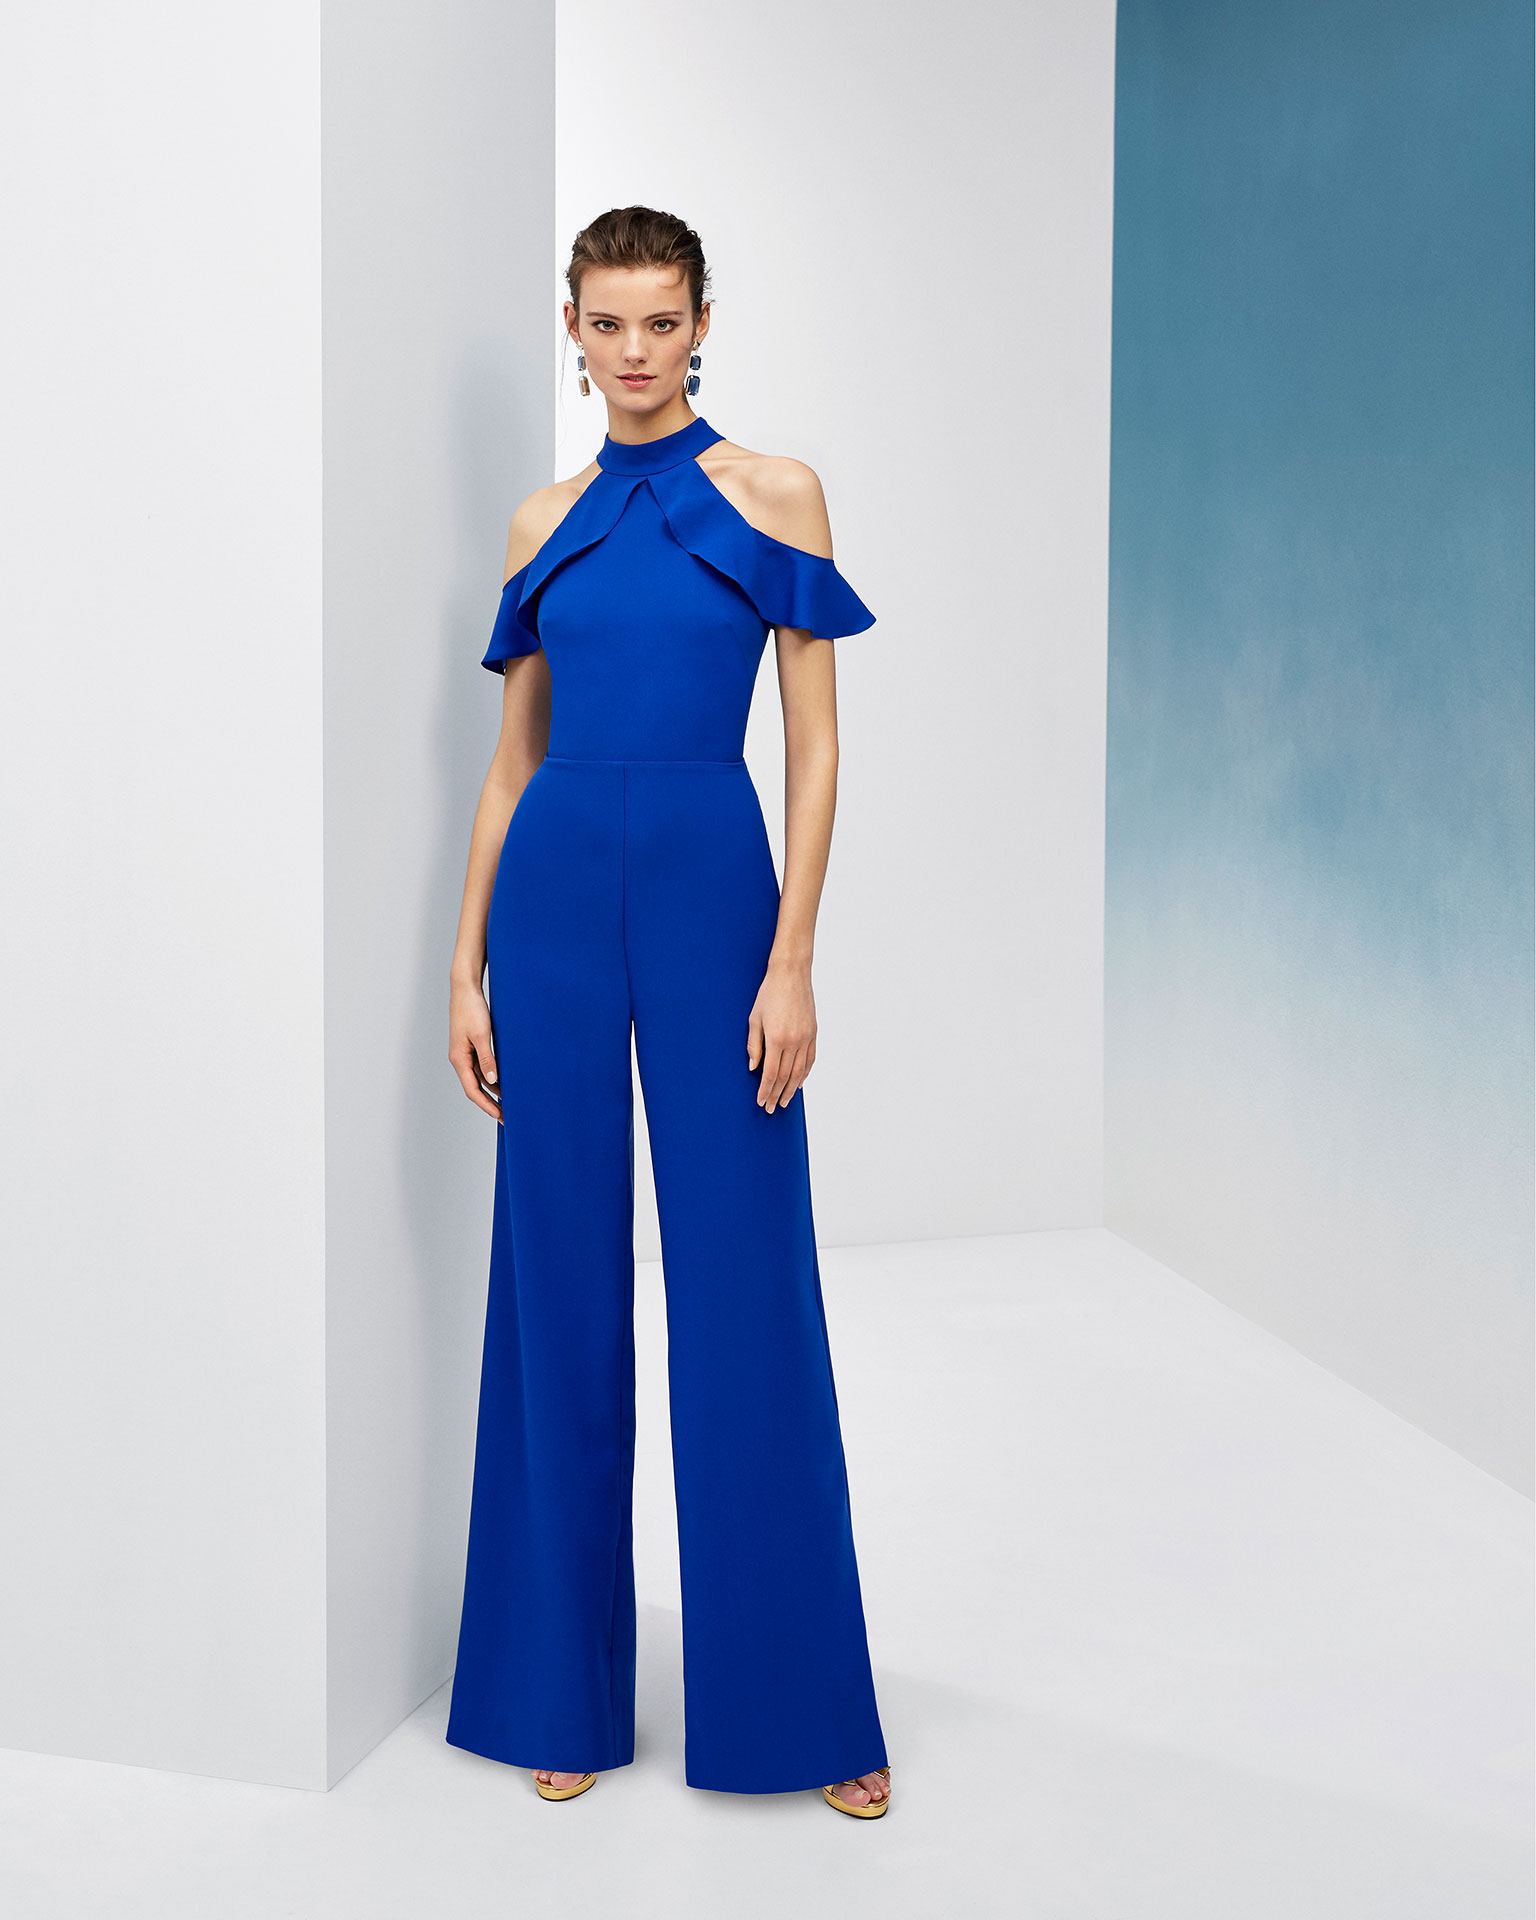 Long cocktail jumpsuit in crepe. Off-the-shoulder halter neckline and low back. 2019 FIESTA AIRE BARCELONA Collection.